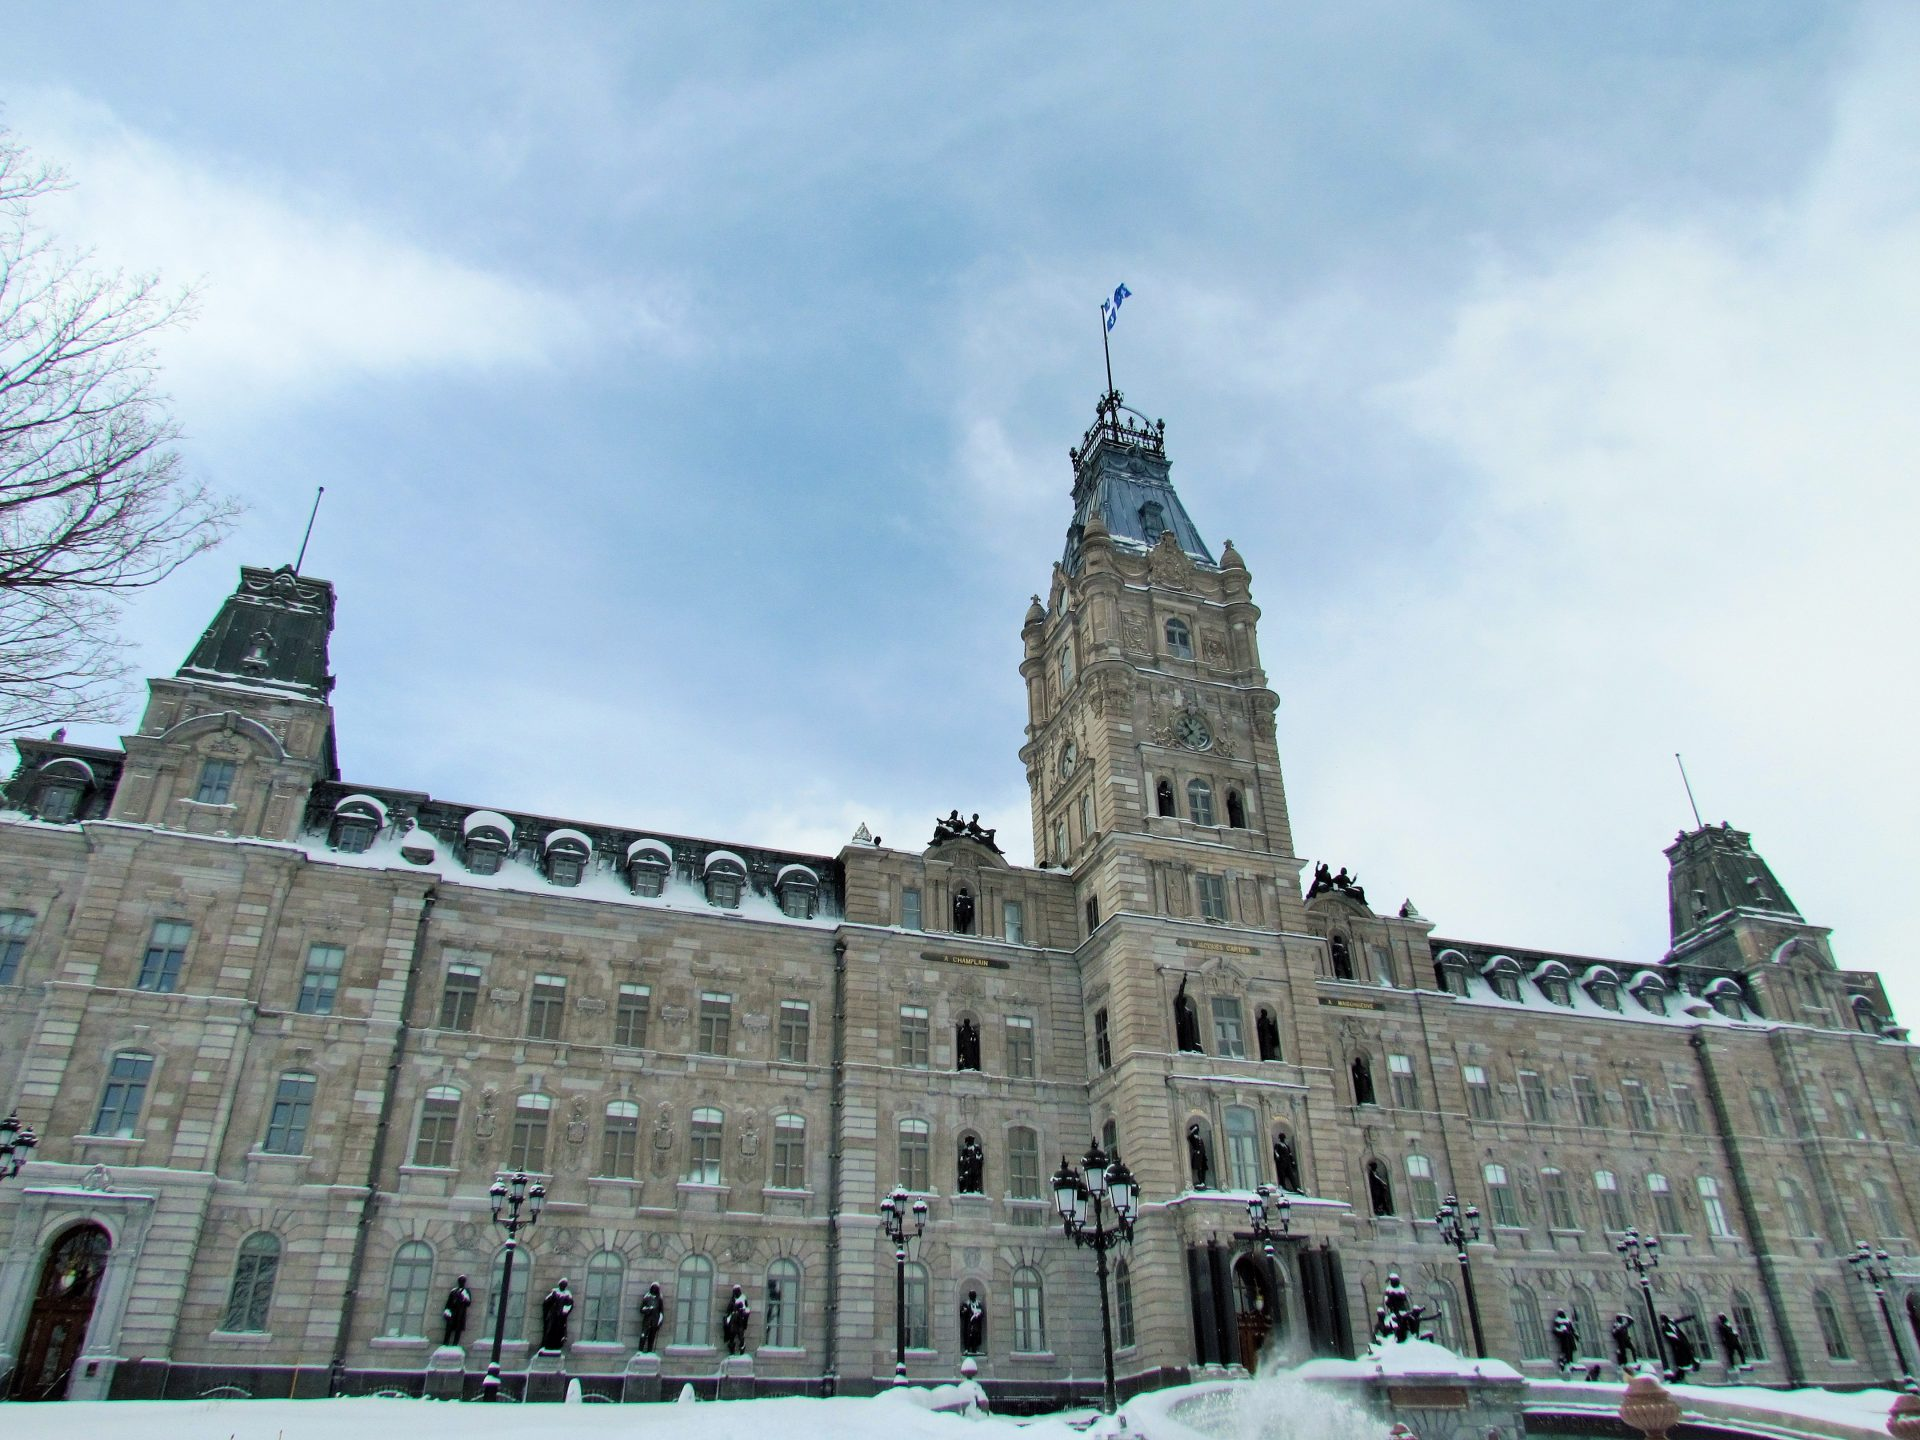 Quebec – February 27 to March 4, 2020